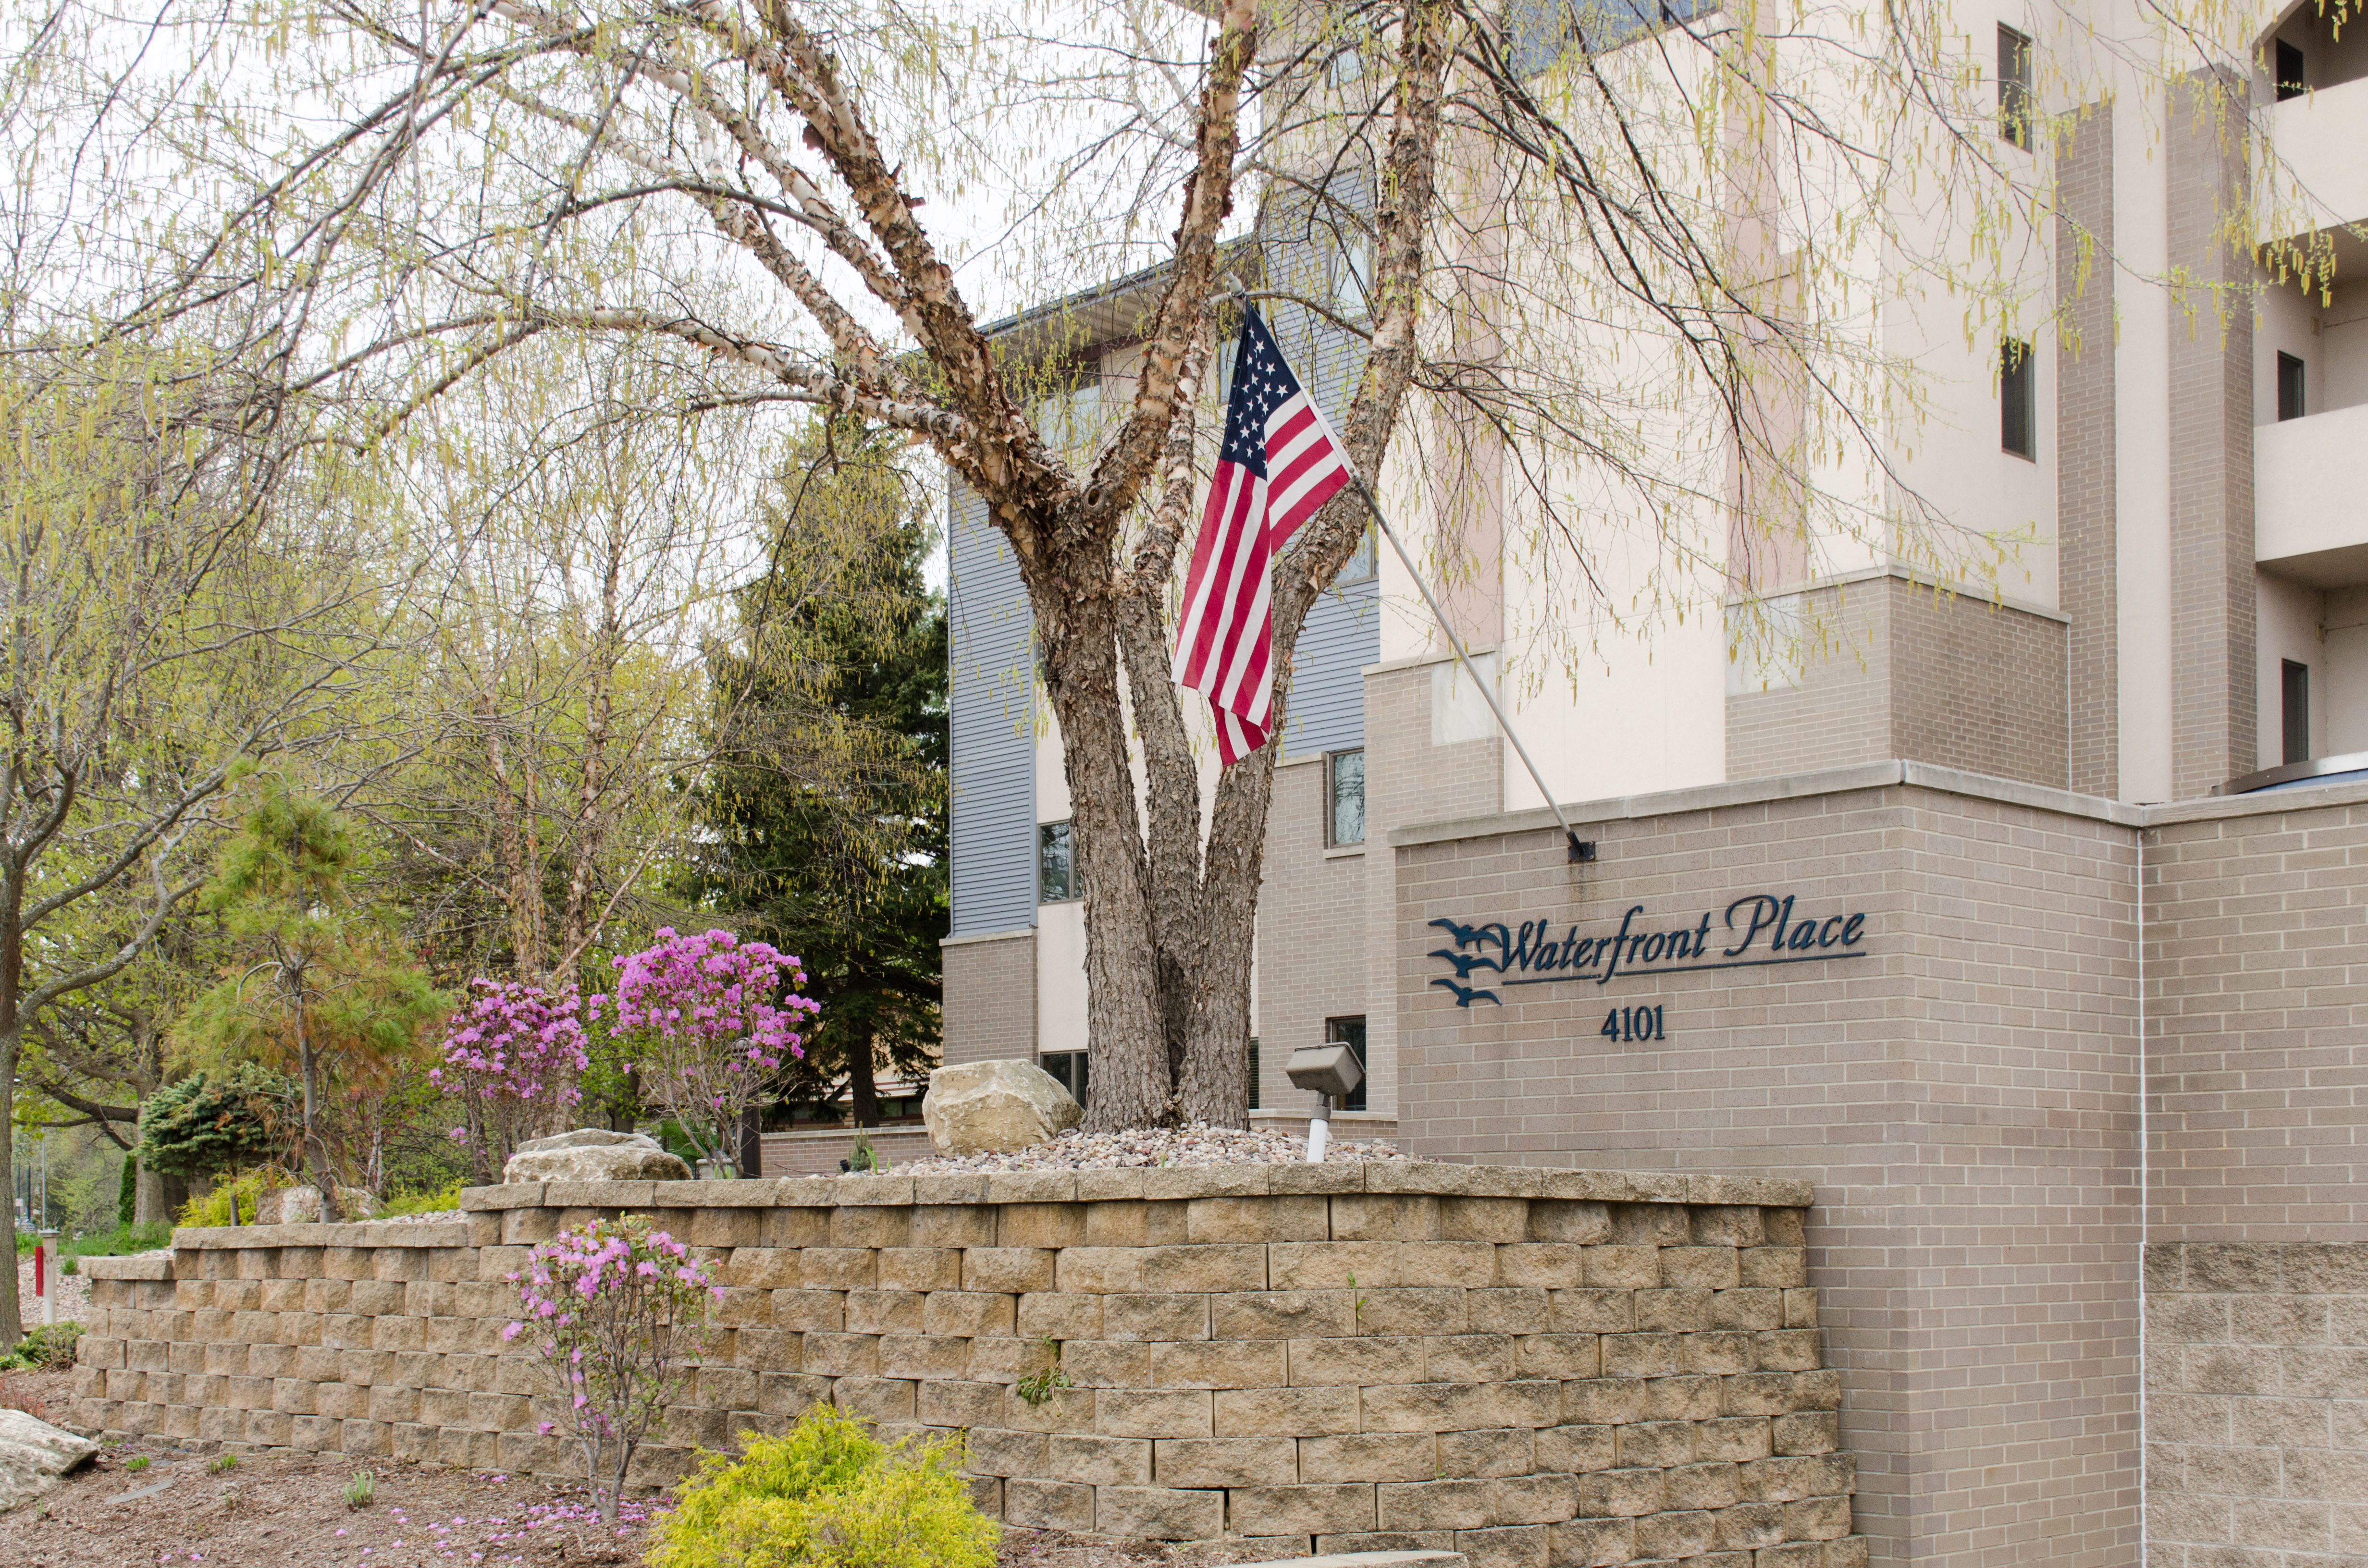 Homes For Sale Middleton Wi >> Waterfront Place - Lake Monona WI Condos for Sale - Lake ...